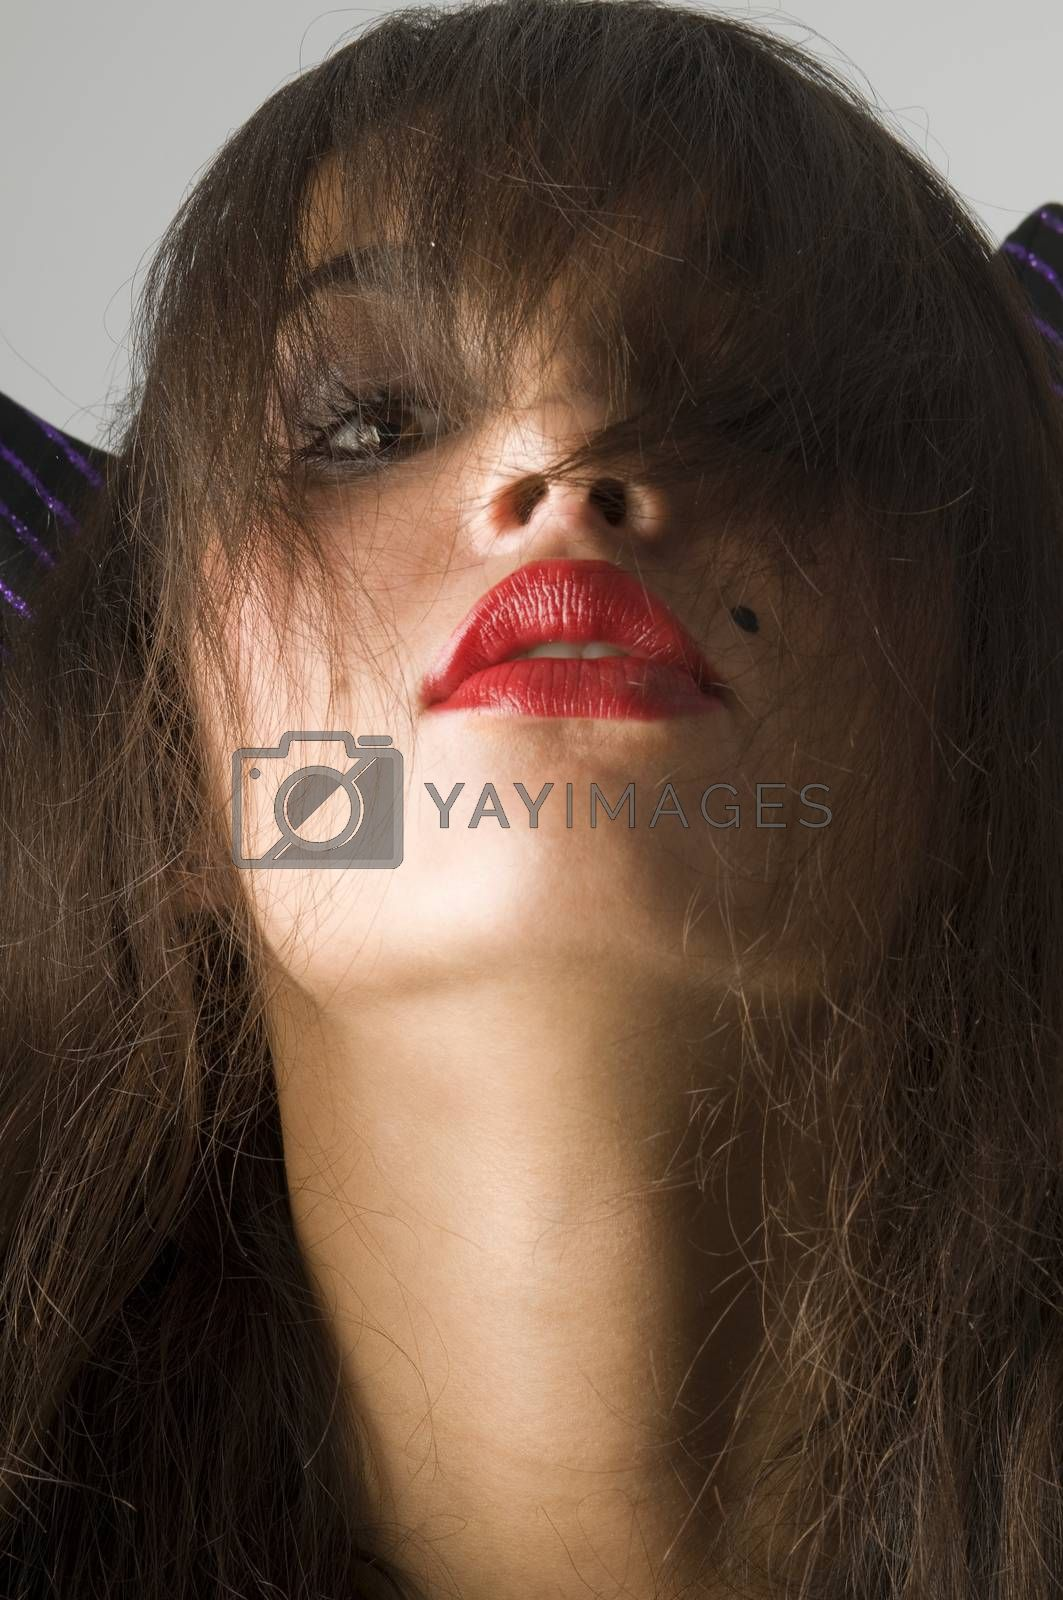 Royalty free image of black hair by fotoCD